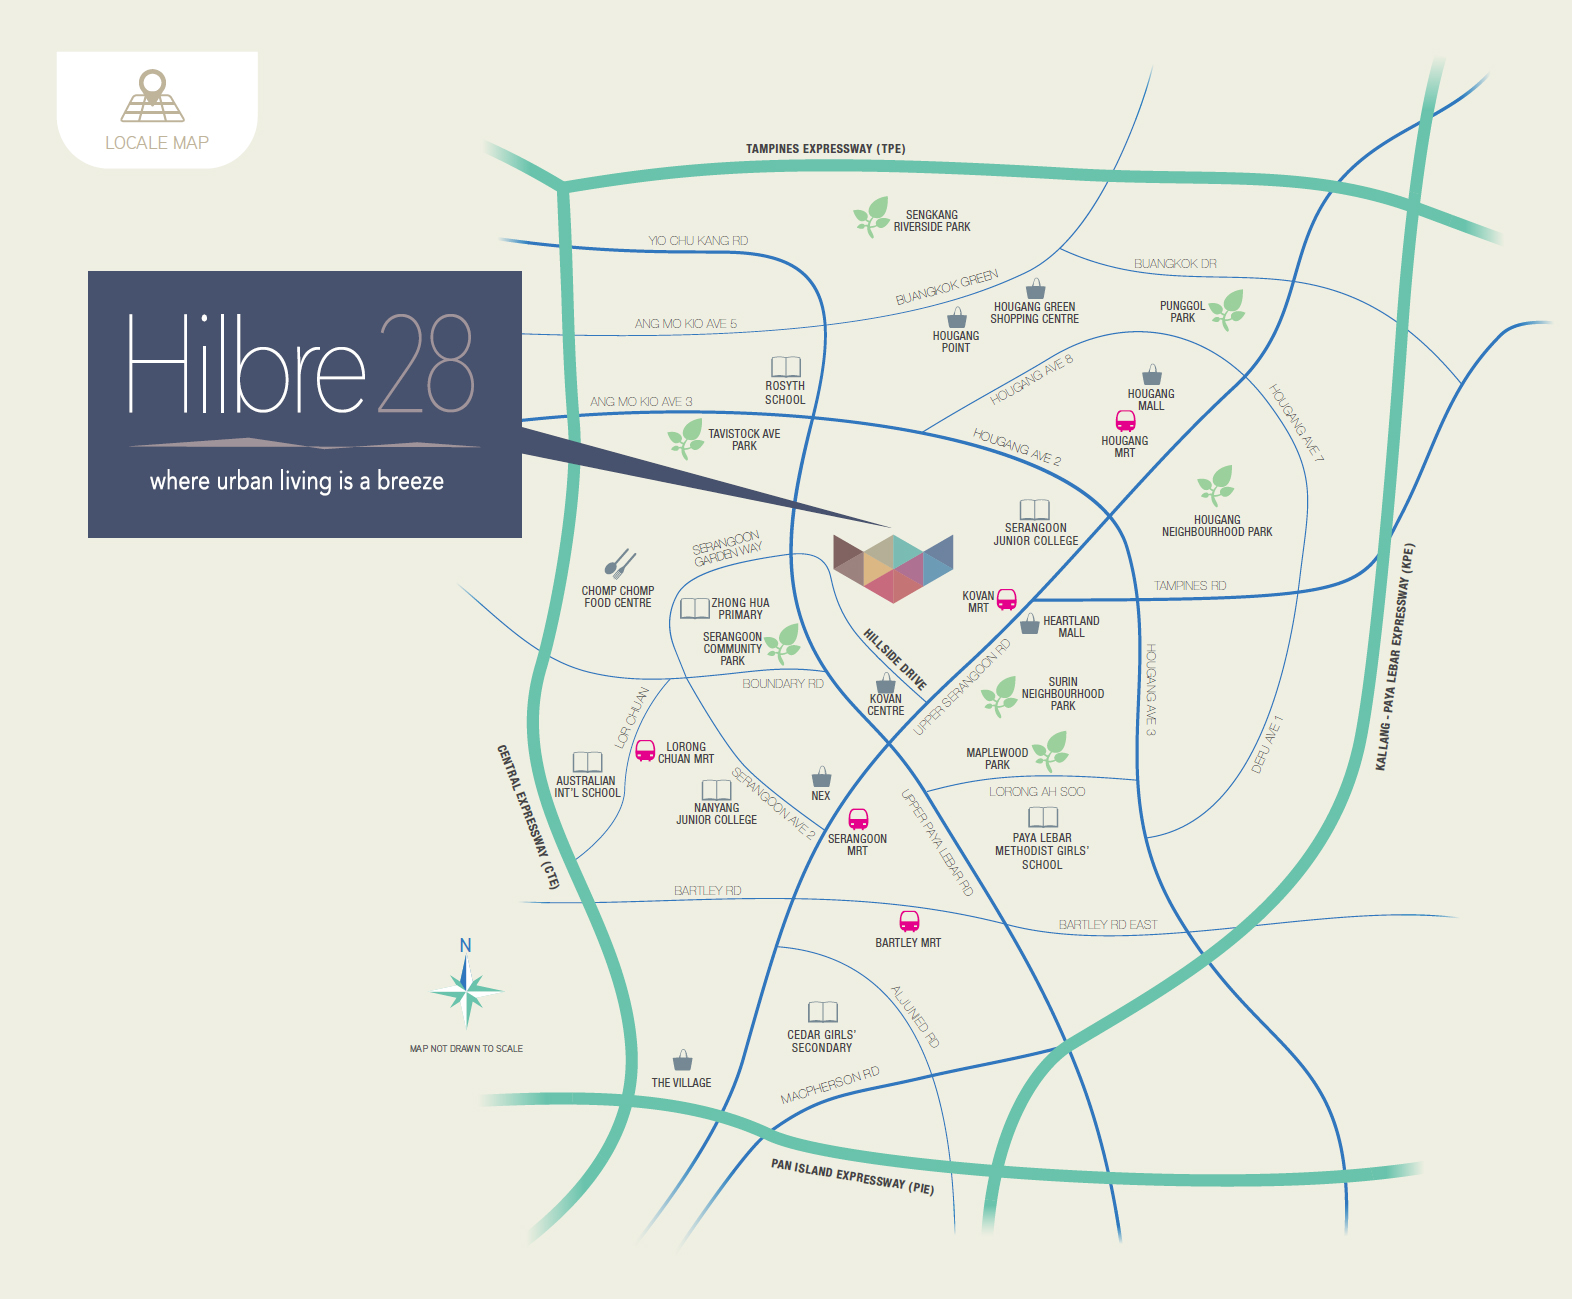 Hilbre_28-location-map